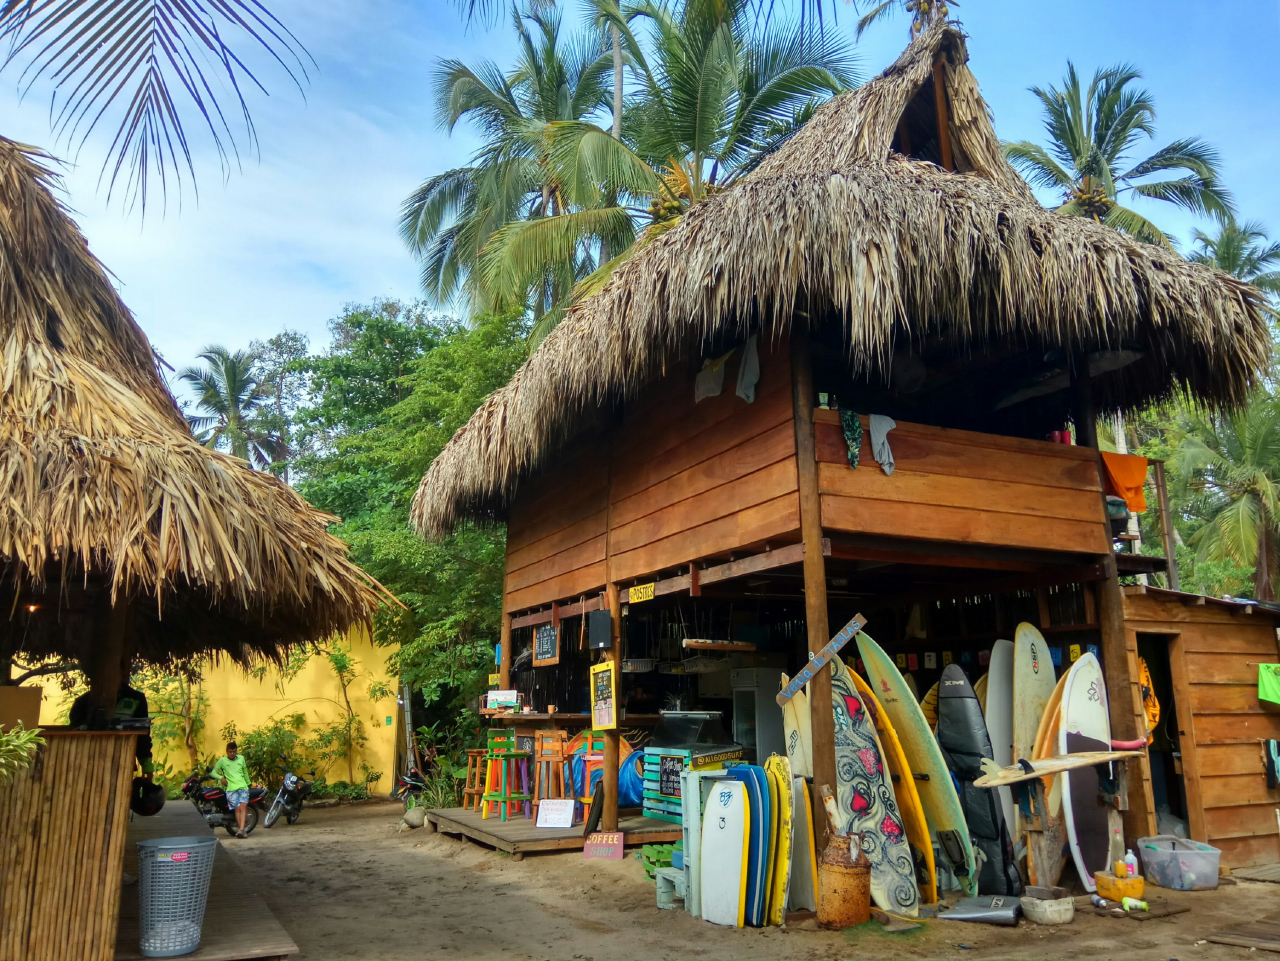 Surfschool in Costeño Beach Colombia